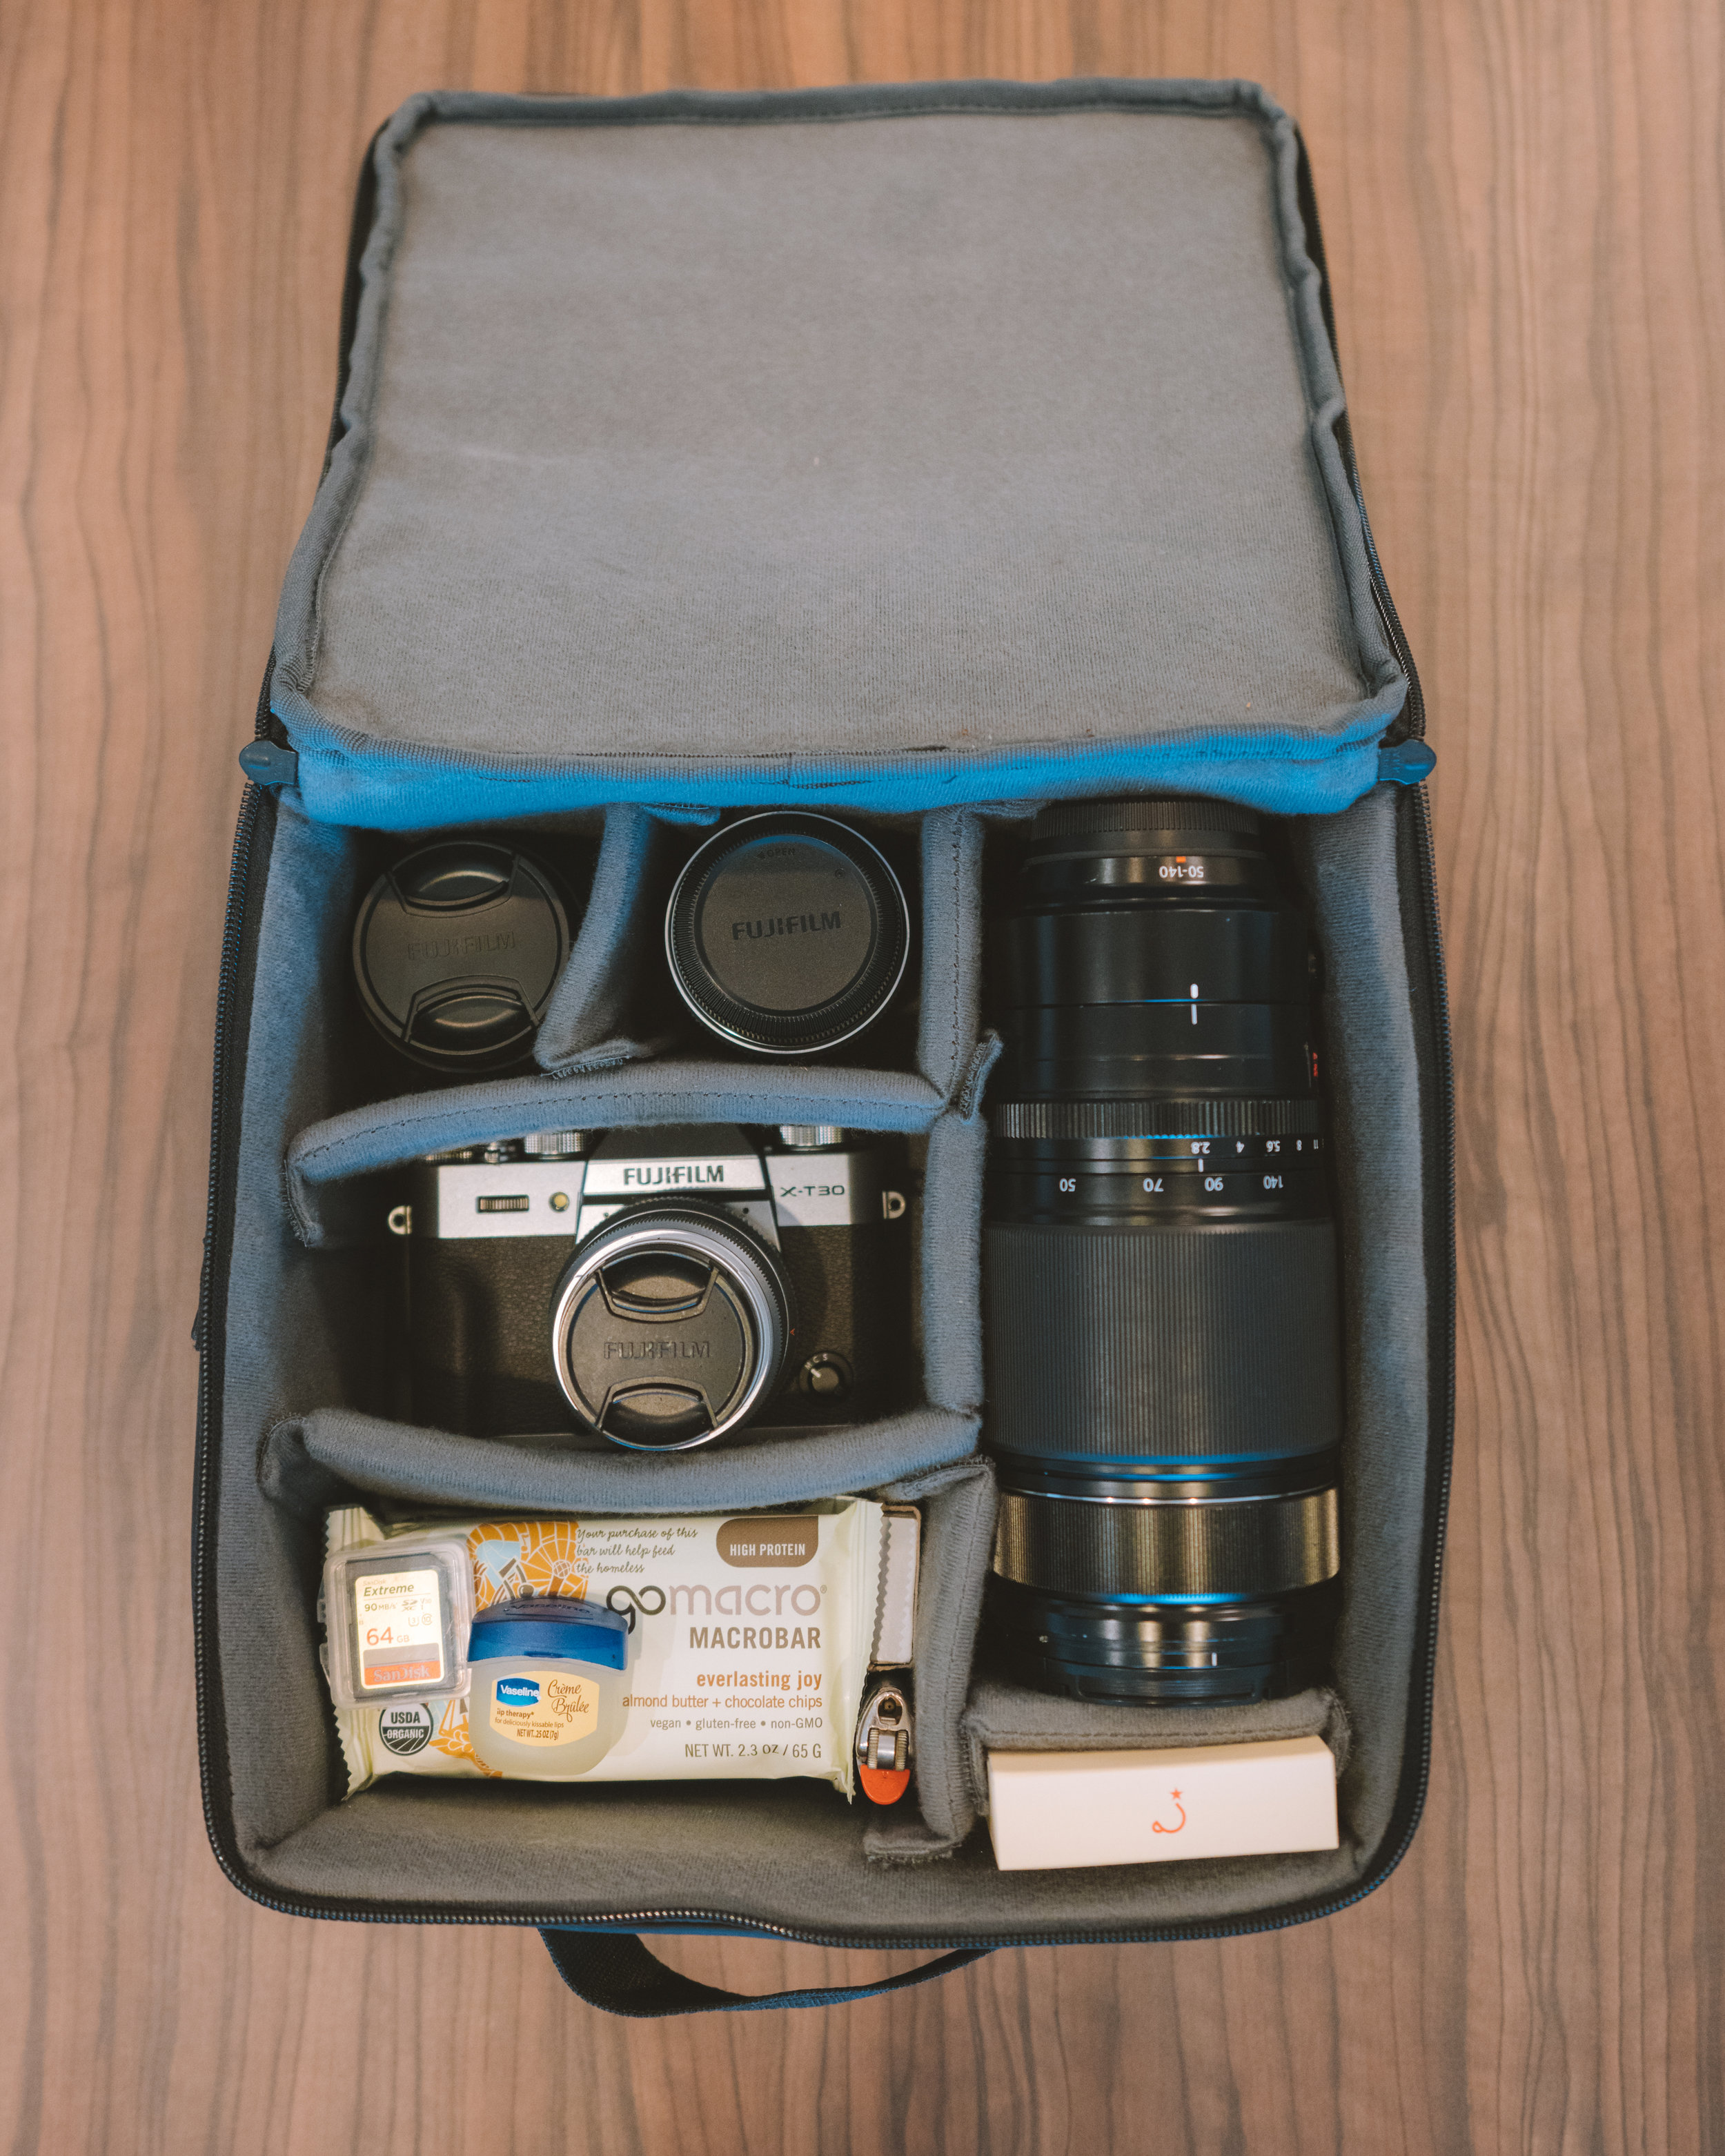 Fujifilm X-T30 in the Douchebags CIA camera bag with accessories (including snacks & coffee)